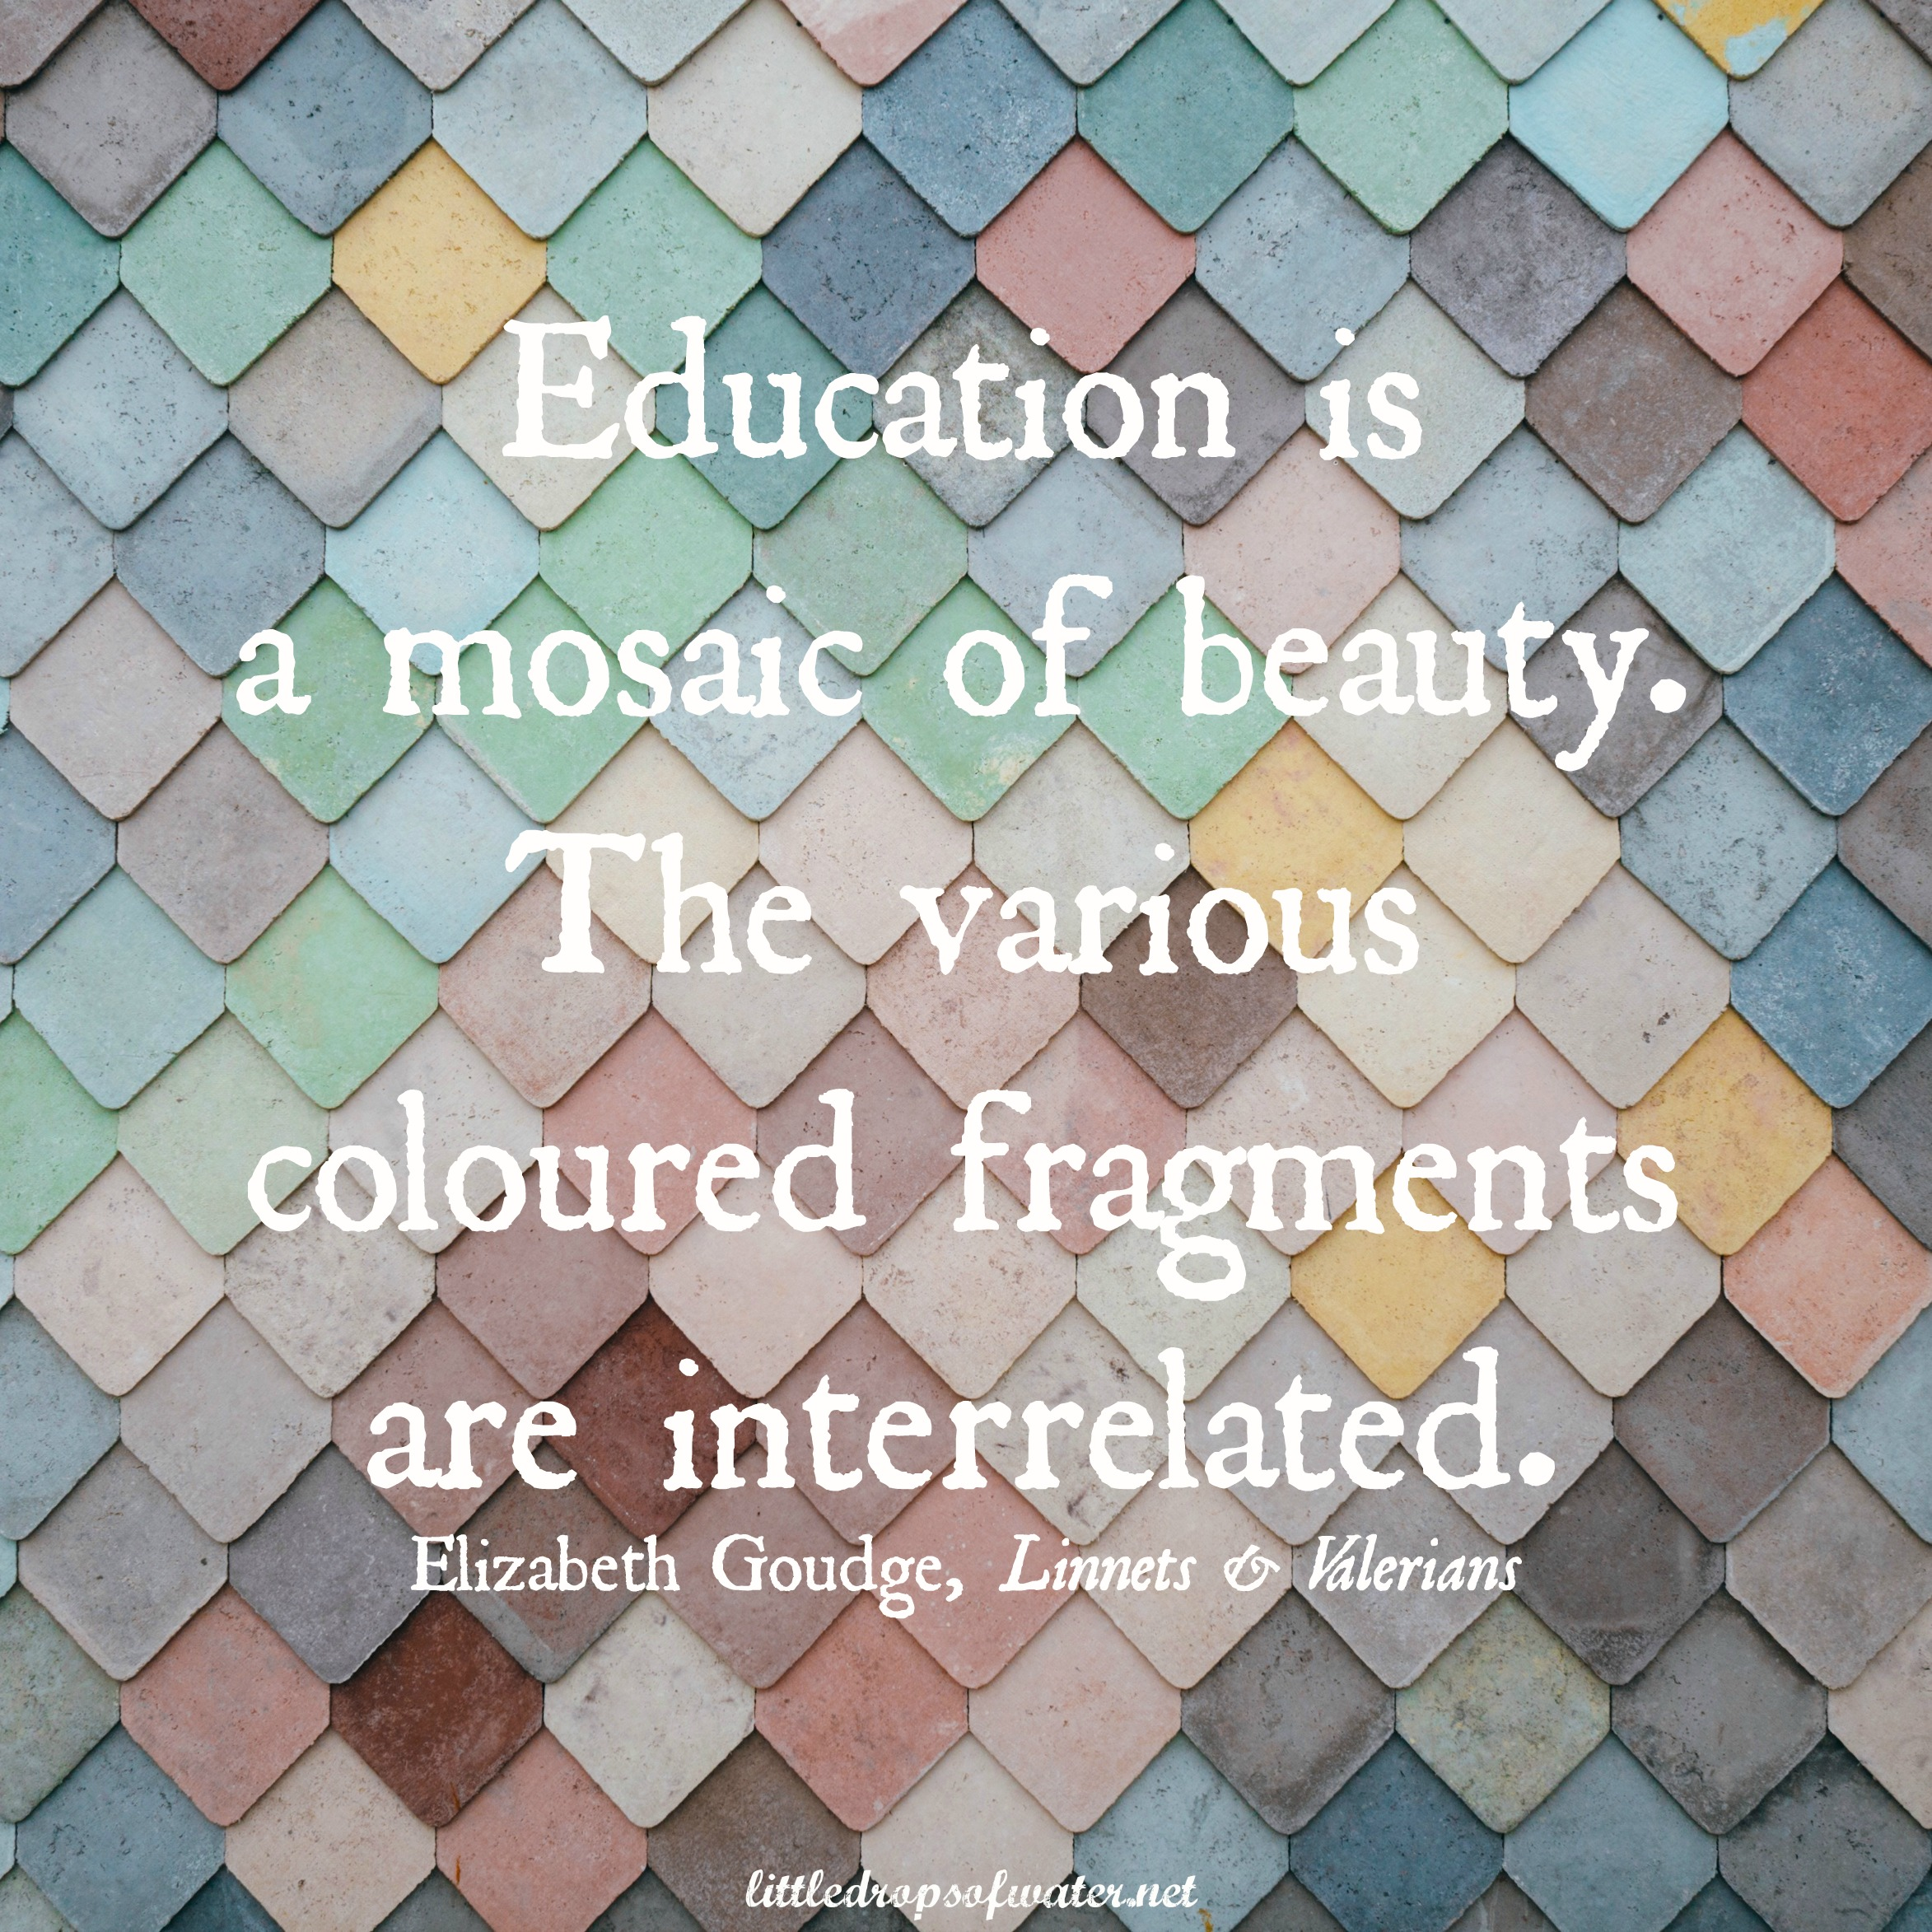 31 Days of Favorite Quotes: A Mosaic of Beauty